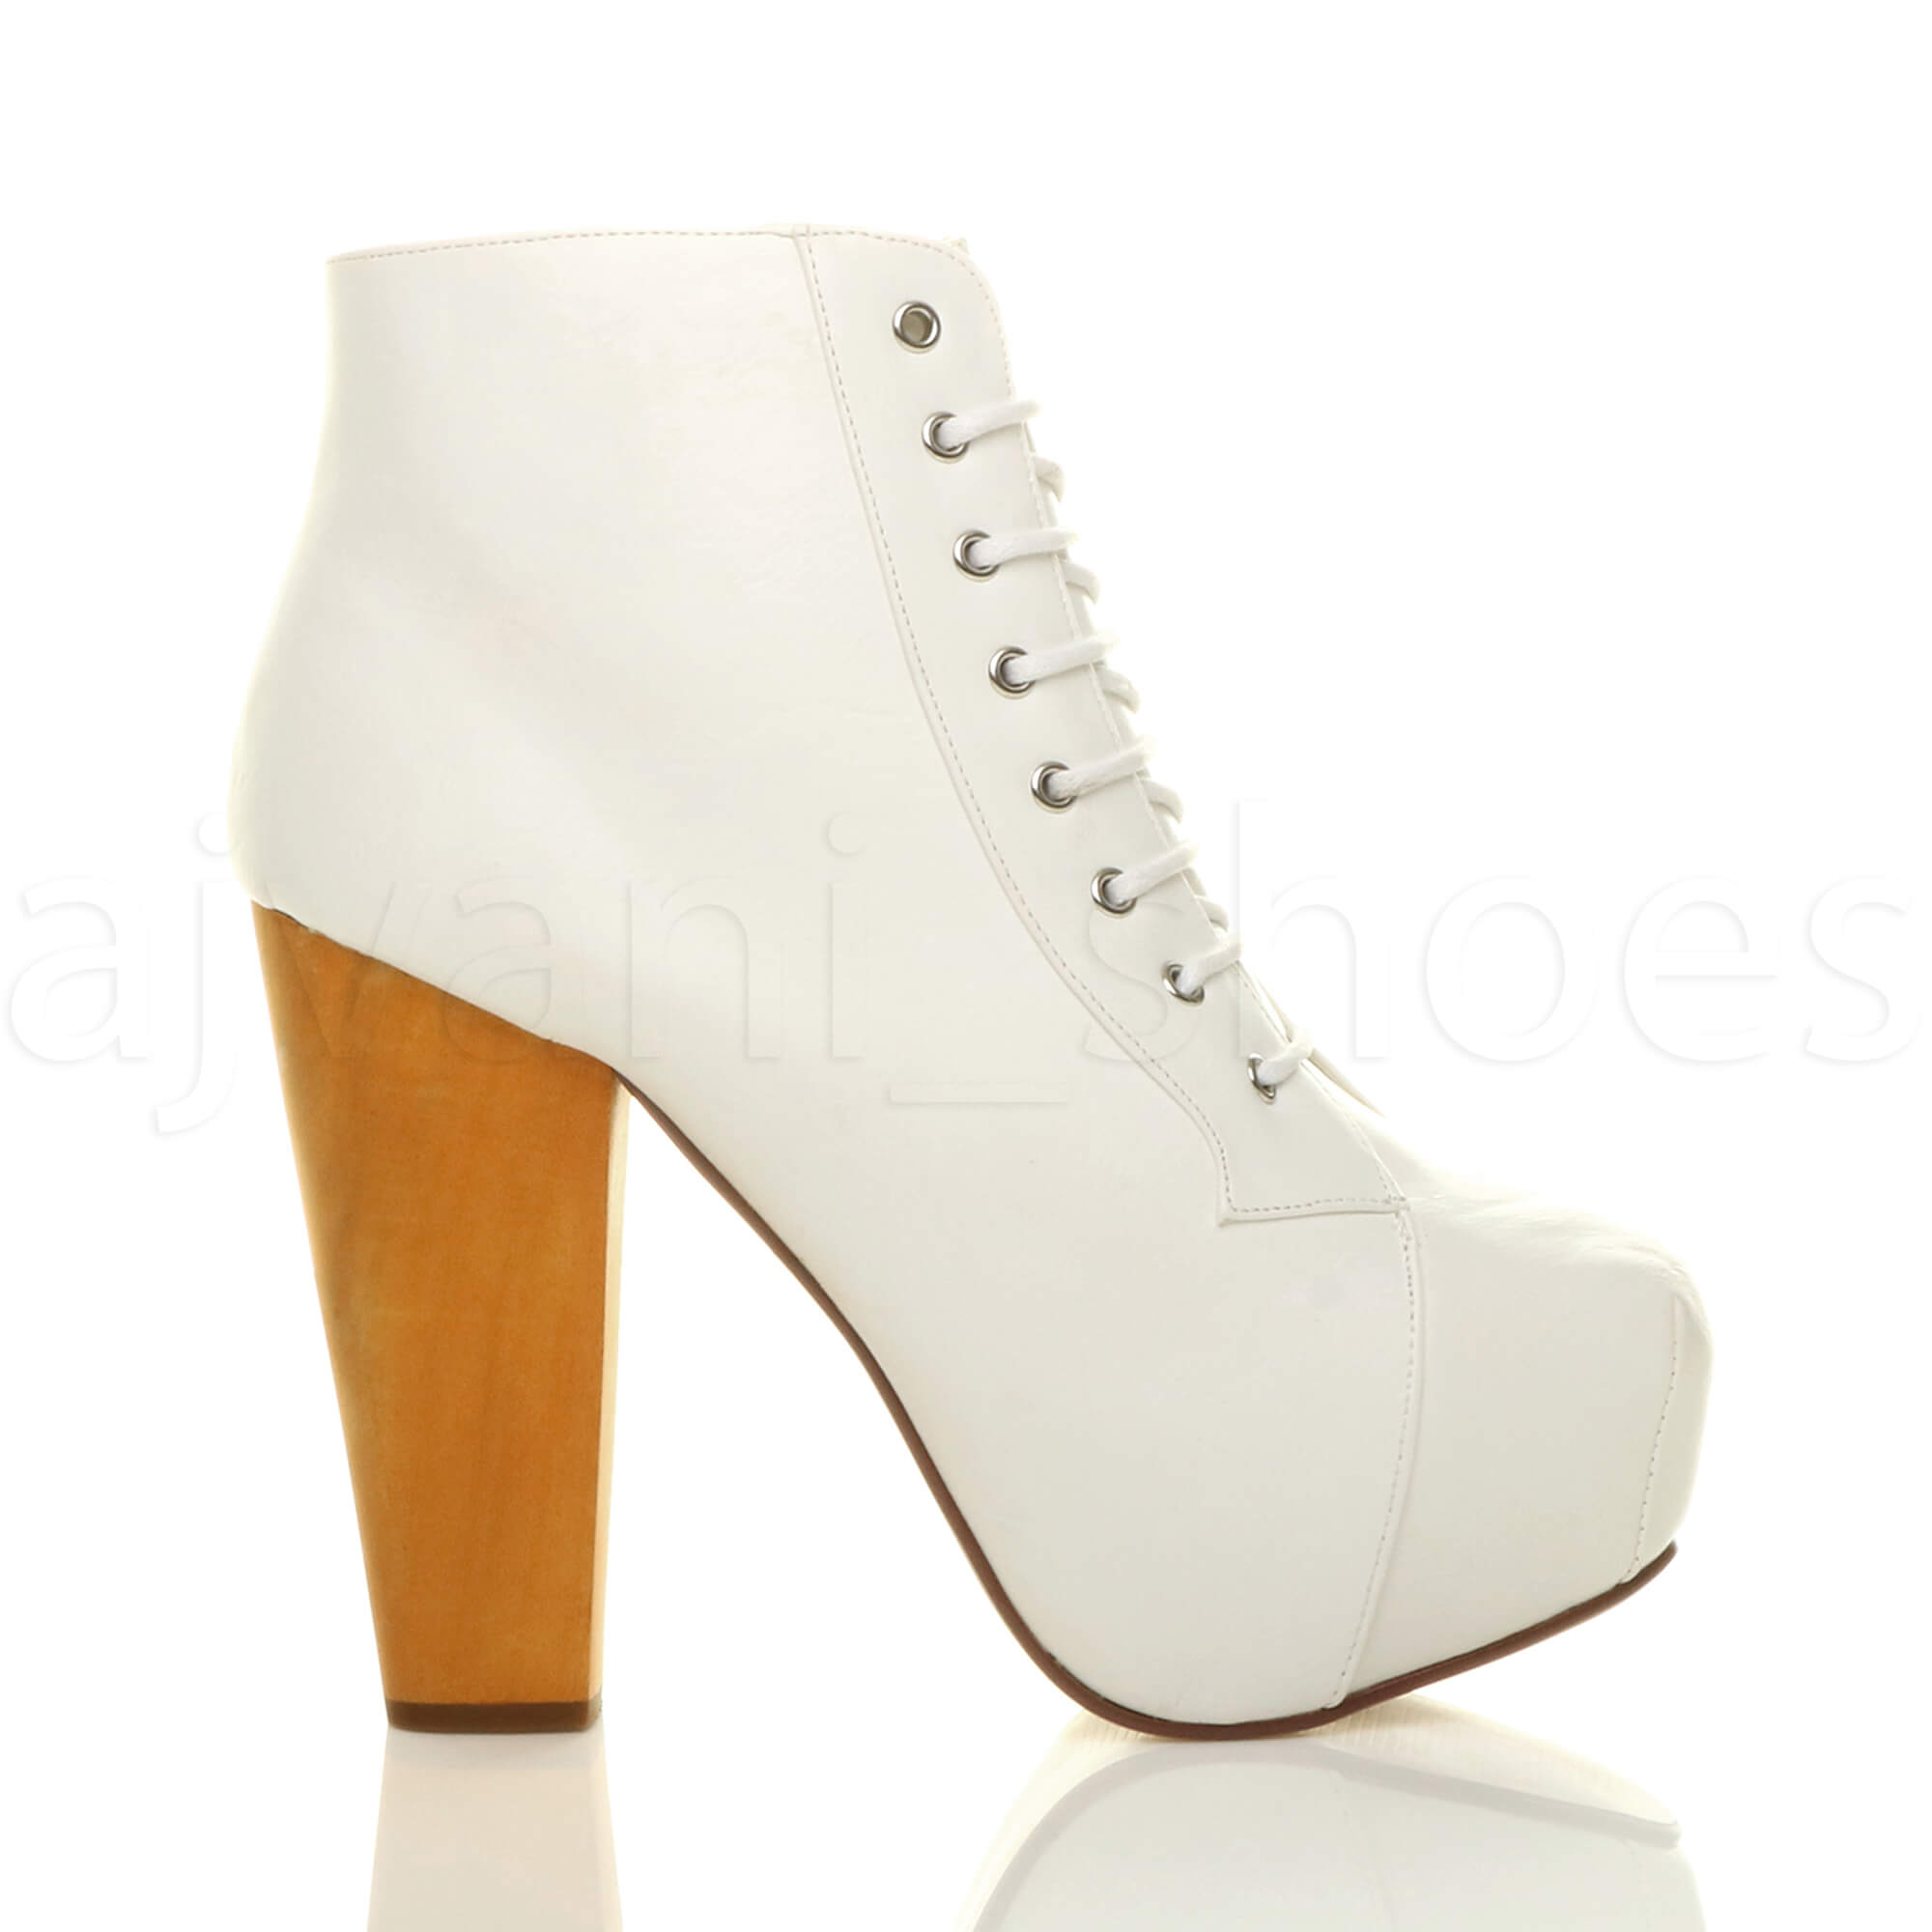 WOMENS-LADIES-LACE-UP-PLATFORM-WOODEN-BLOCK-HIGH-HEEL-BOOTIES-ANKLE-BOOTS-SIZE